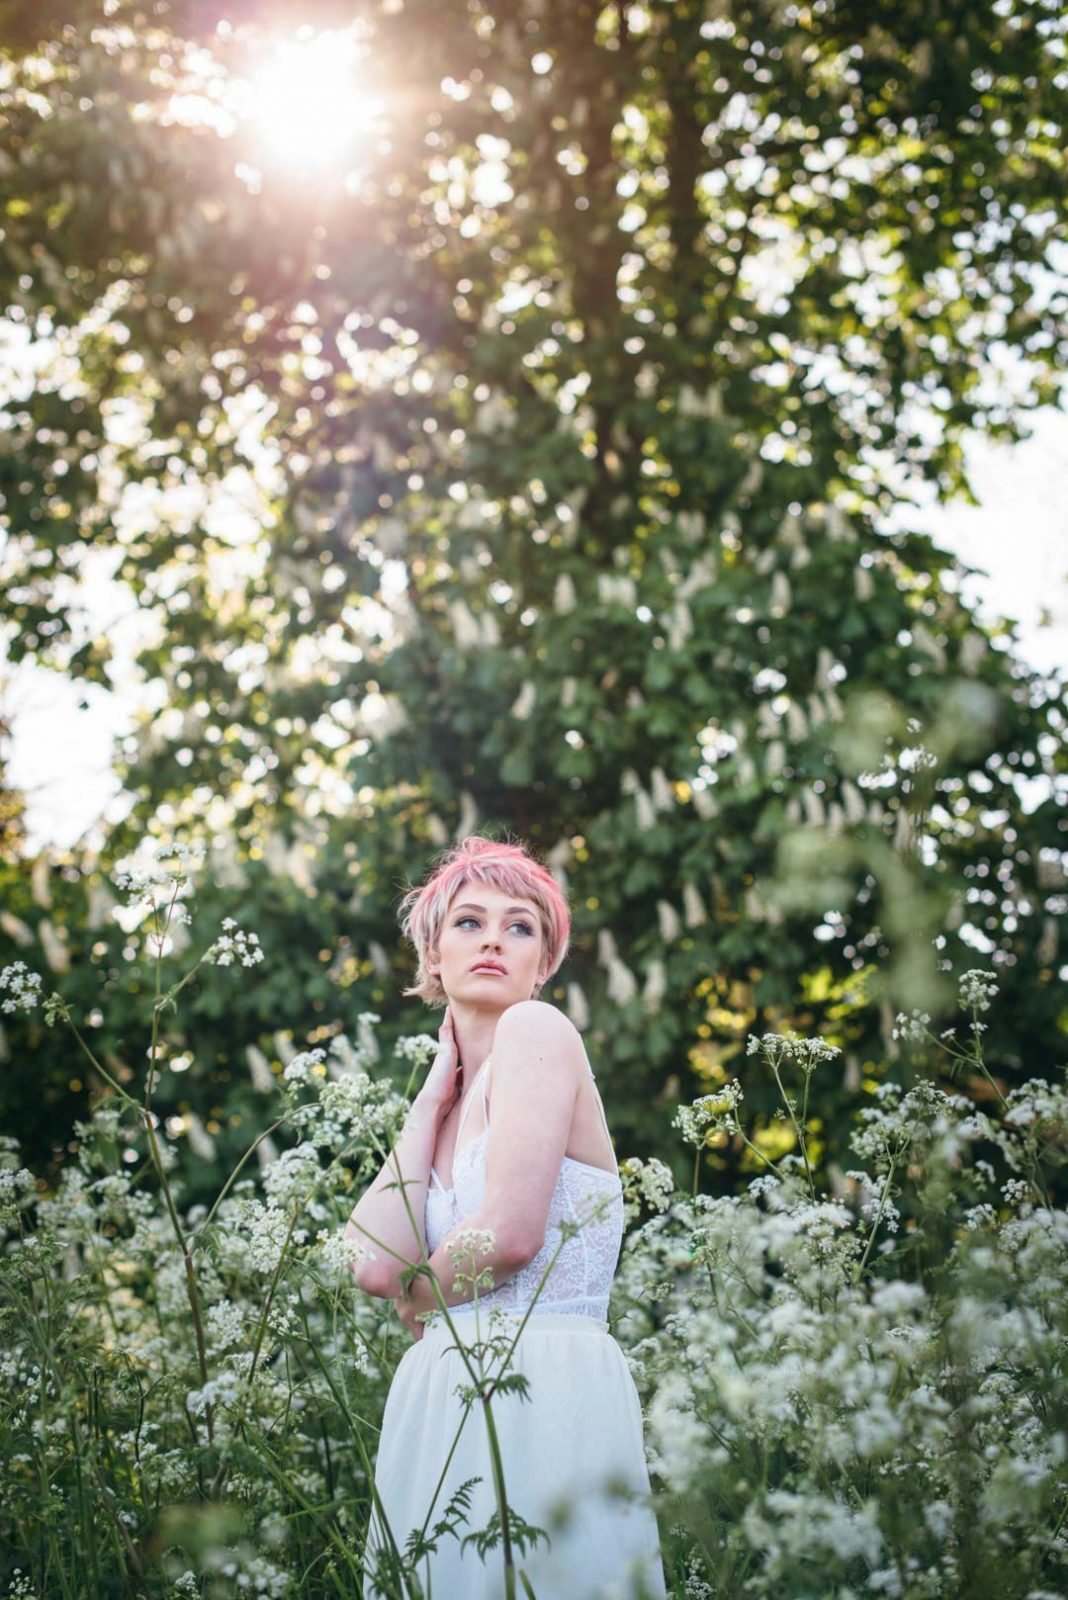 BethMoseleyPhotography_WhiteonWhite-164FINAL1080px wide-71